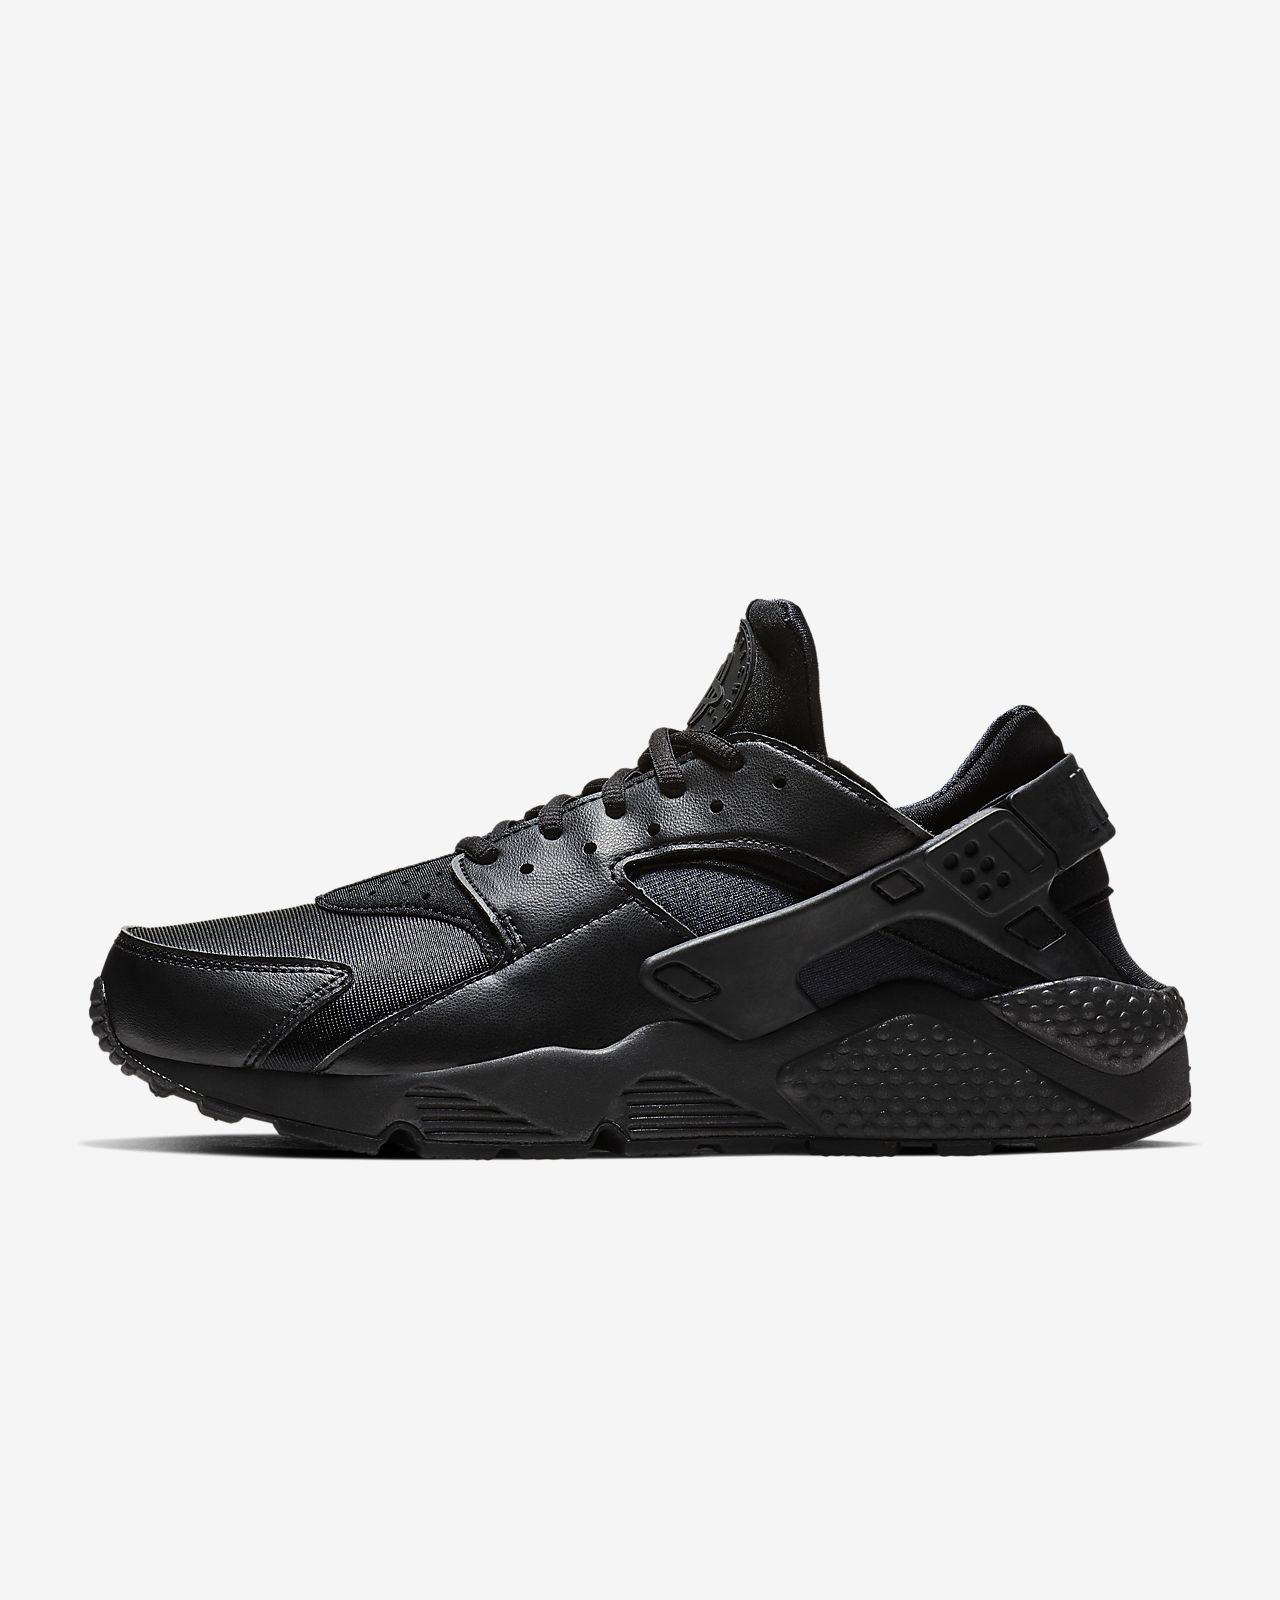 reputable site 5539e e1b49 Women s Shoe. Nike Air Huarache